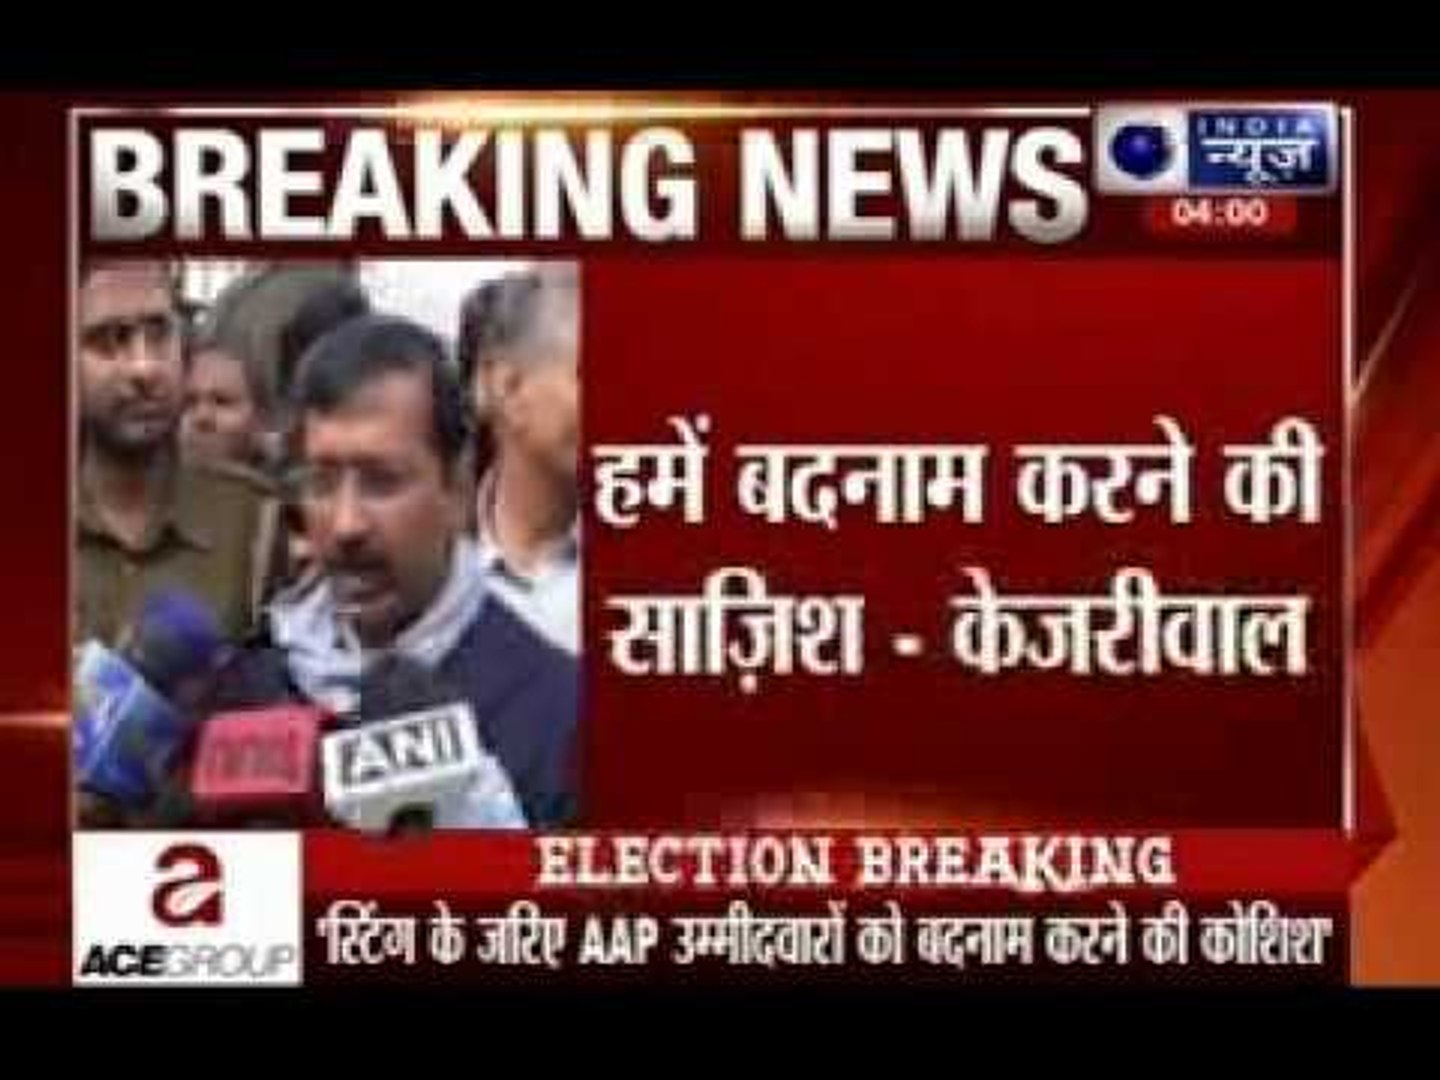 Delhi polls 2015: AAP party chief Kejriwal suspects of fake sting operation